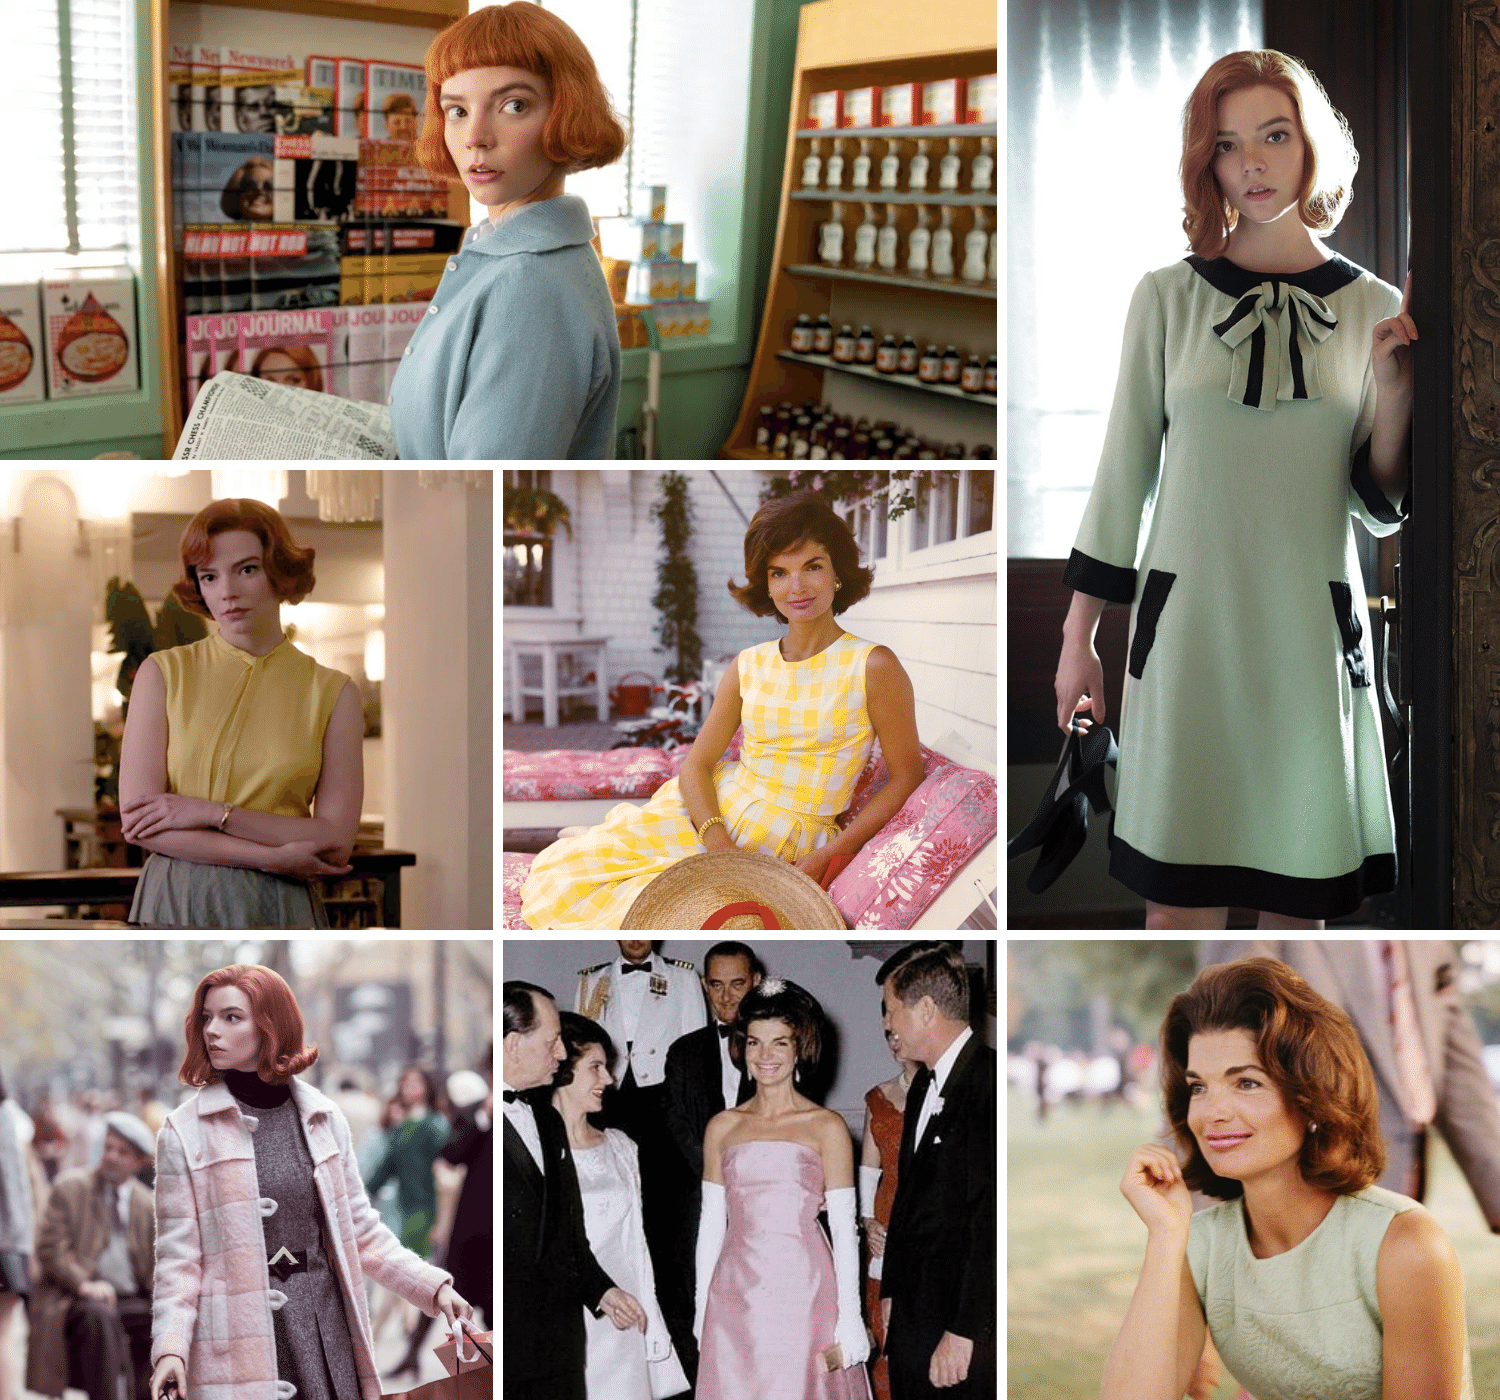 Pastels | Jackie Kennedy | Here's where to buy queens gambit clothes/outfits | Beth Harmon's Most Iconic Outfits | Queen's Gambit Style Guide: How to Wear Beth Harmon's '60s Fashion Outfits in 2021 | Muse Boutique Outlet